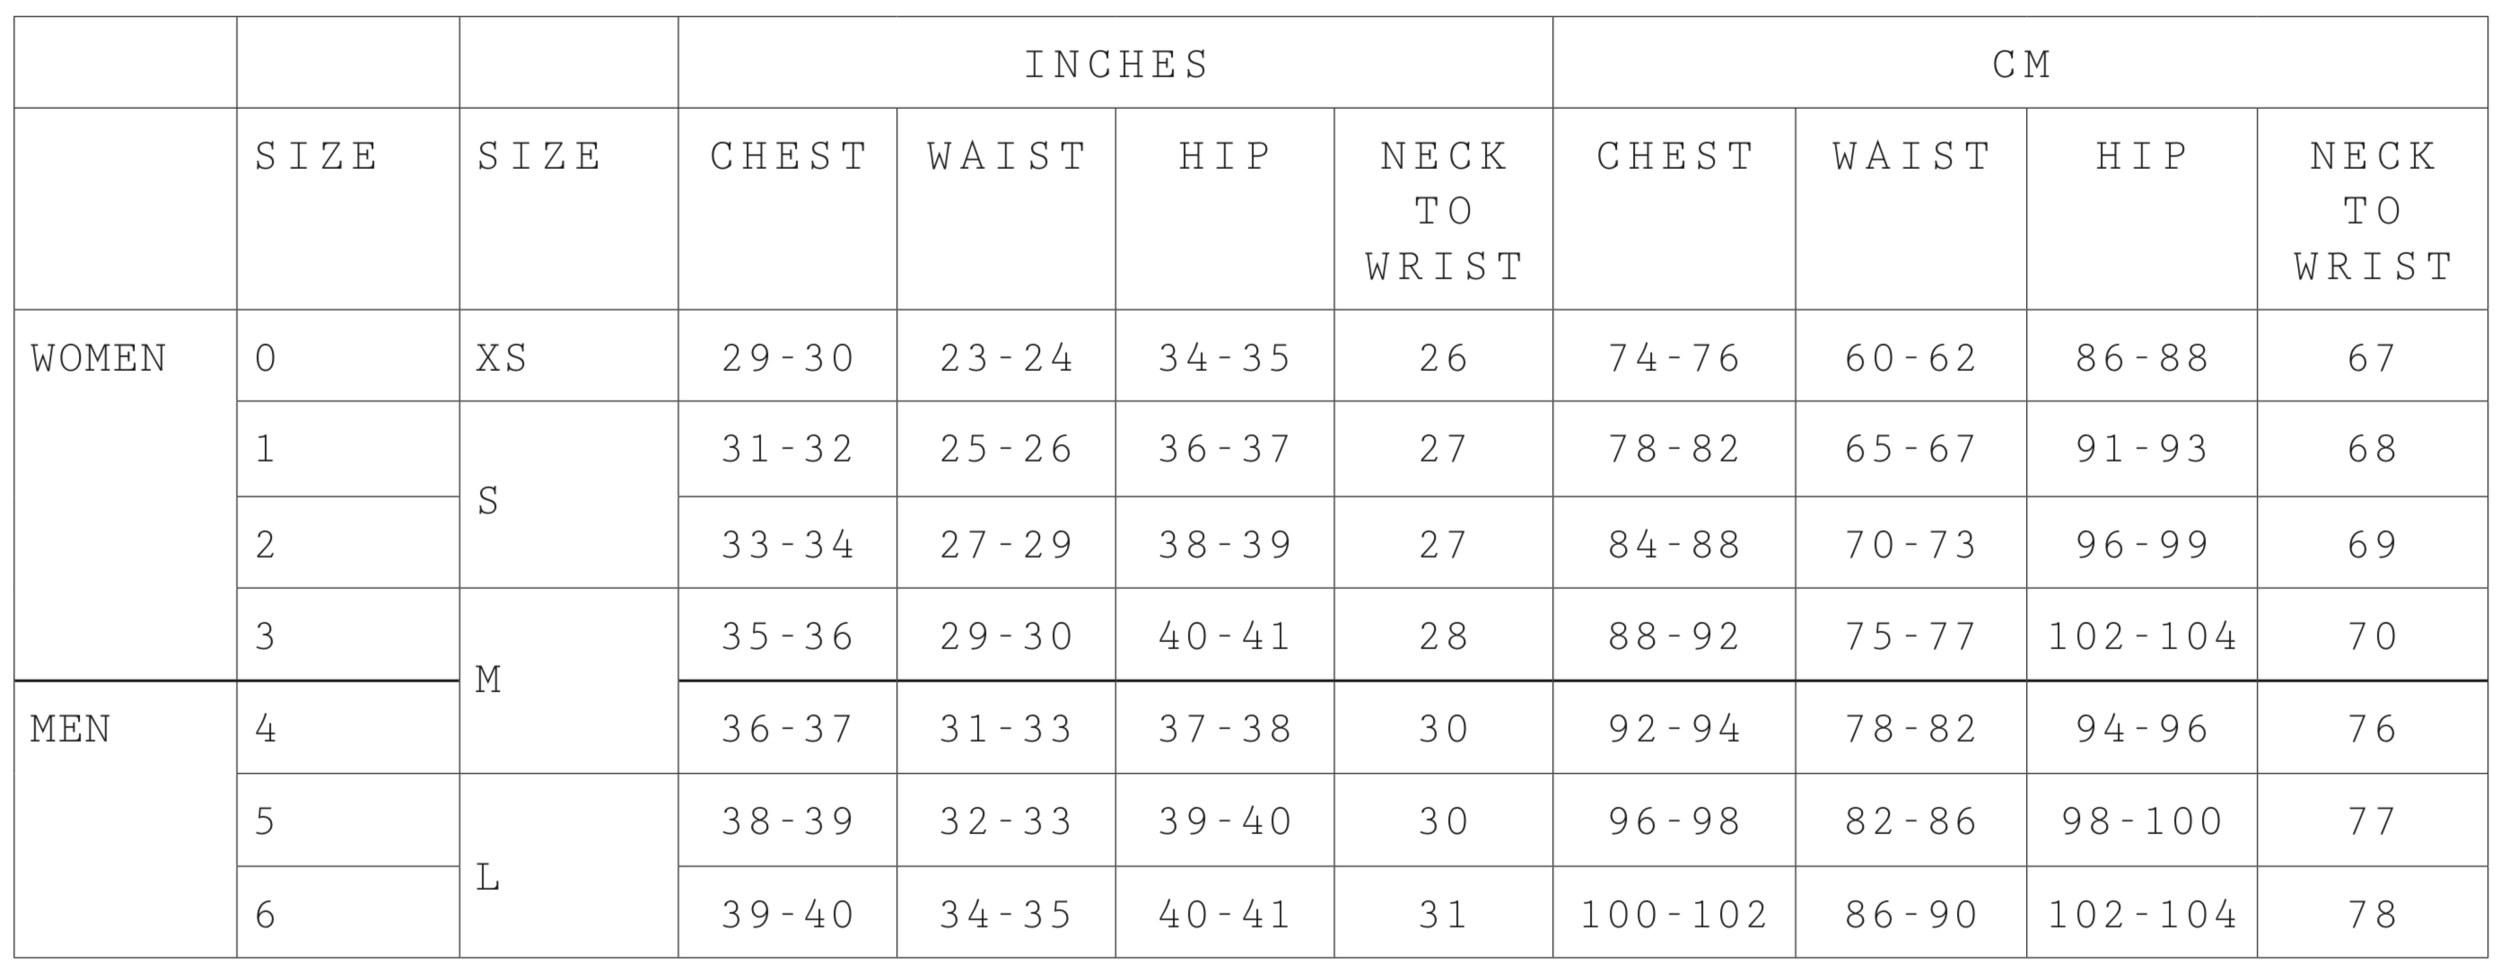 Sizing Chart.png